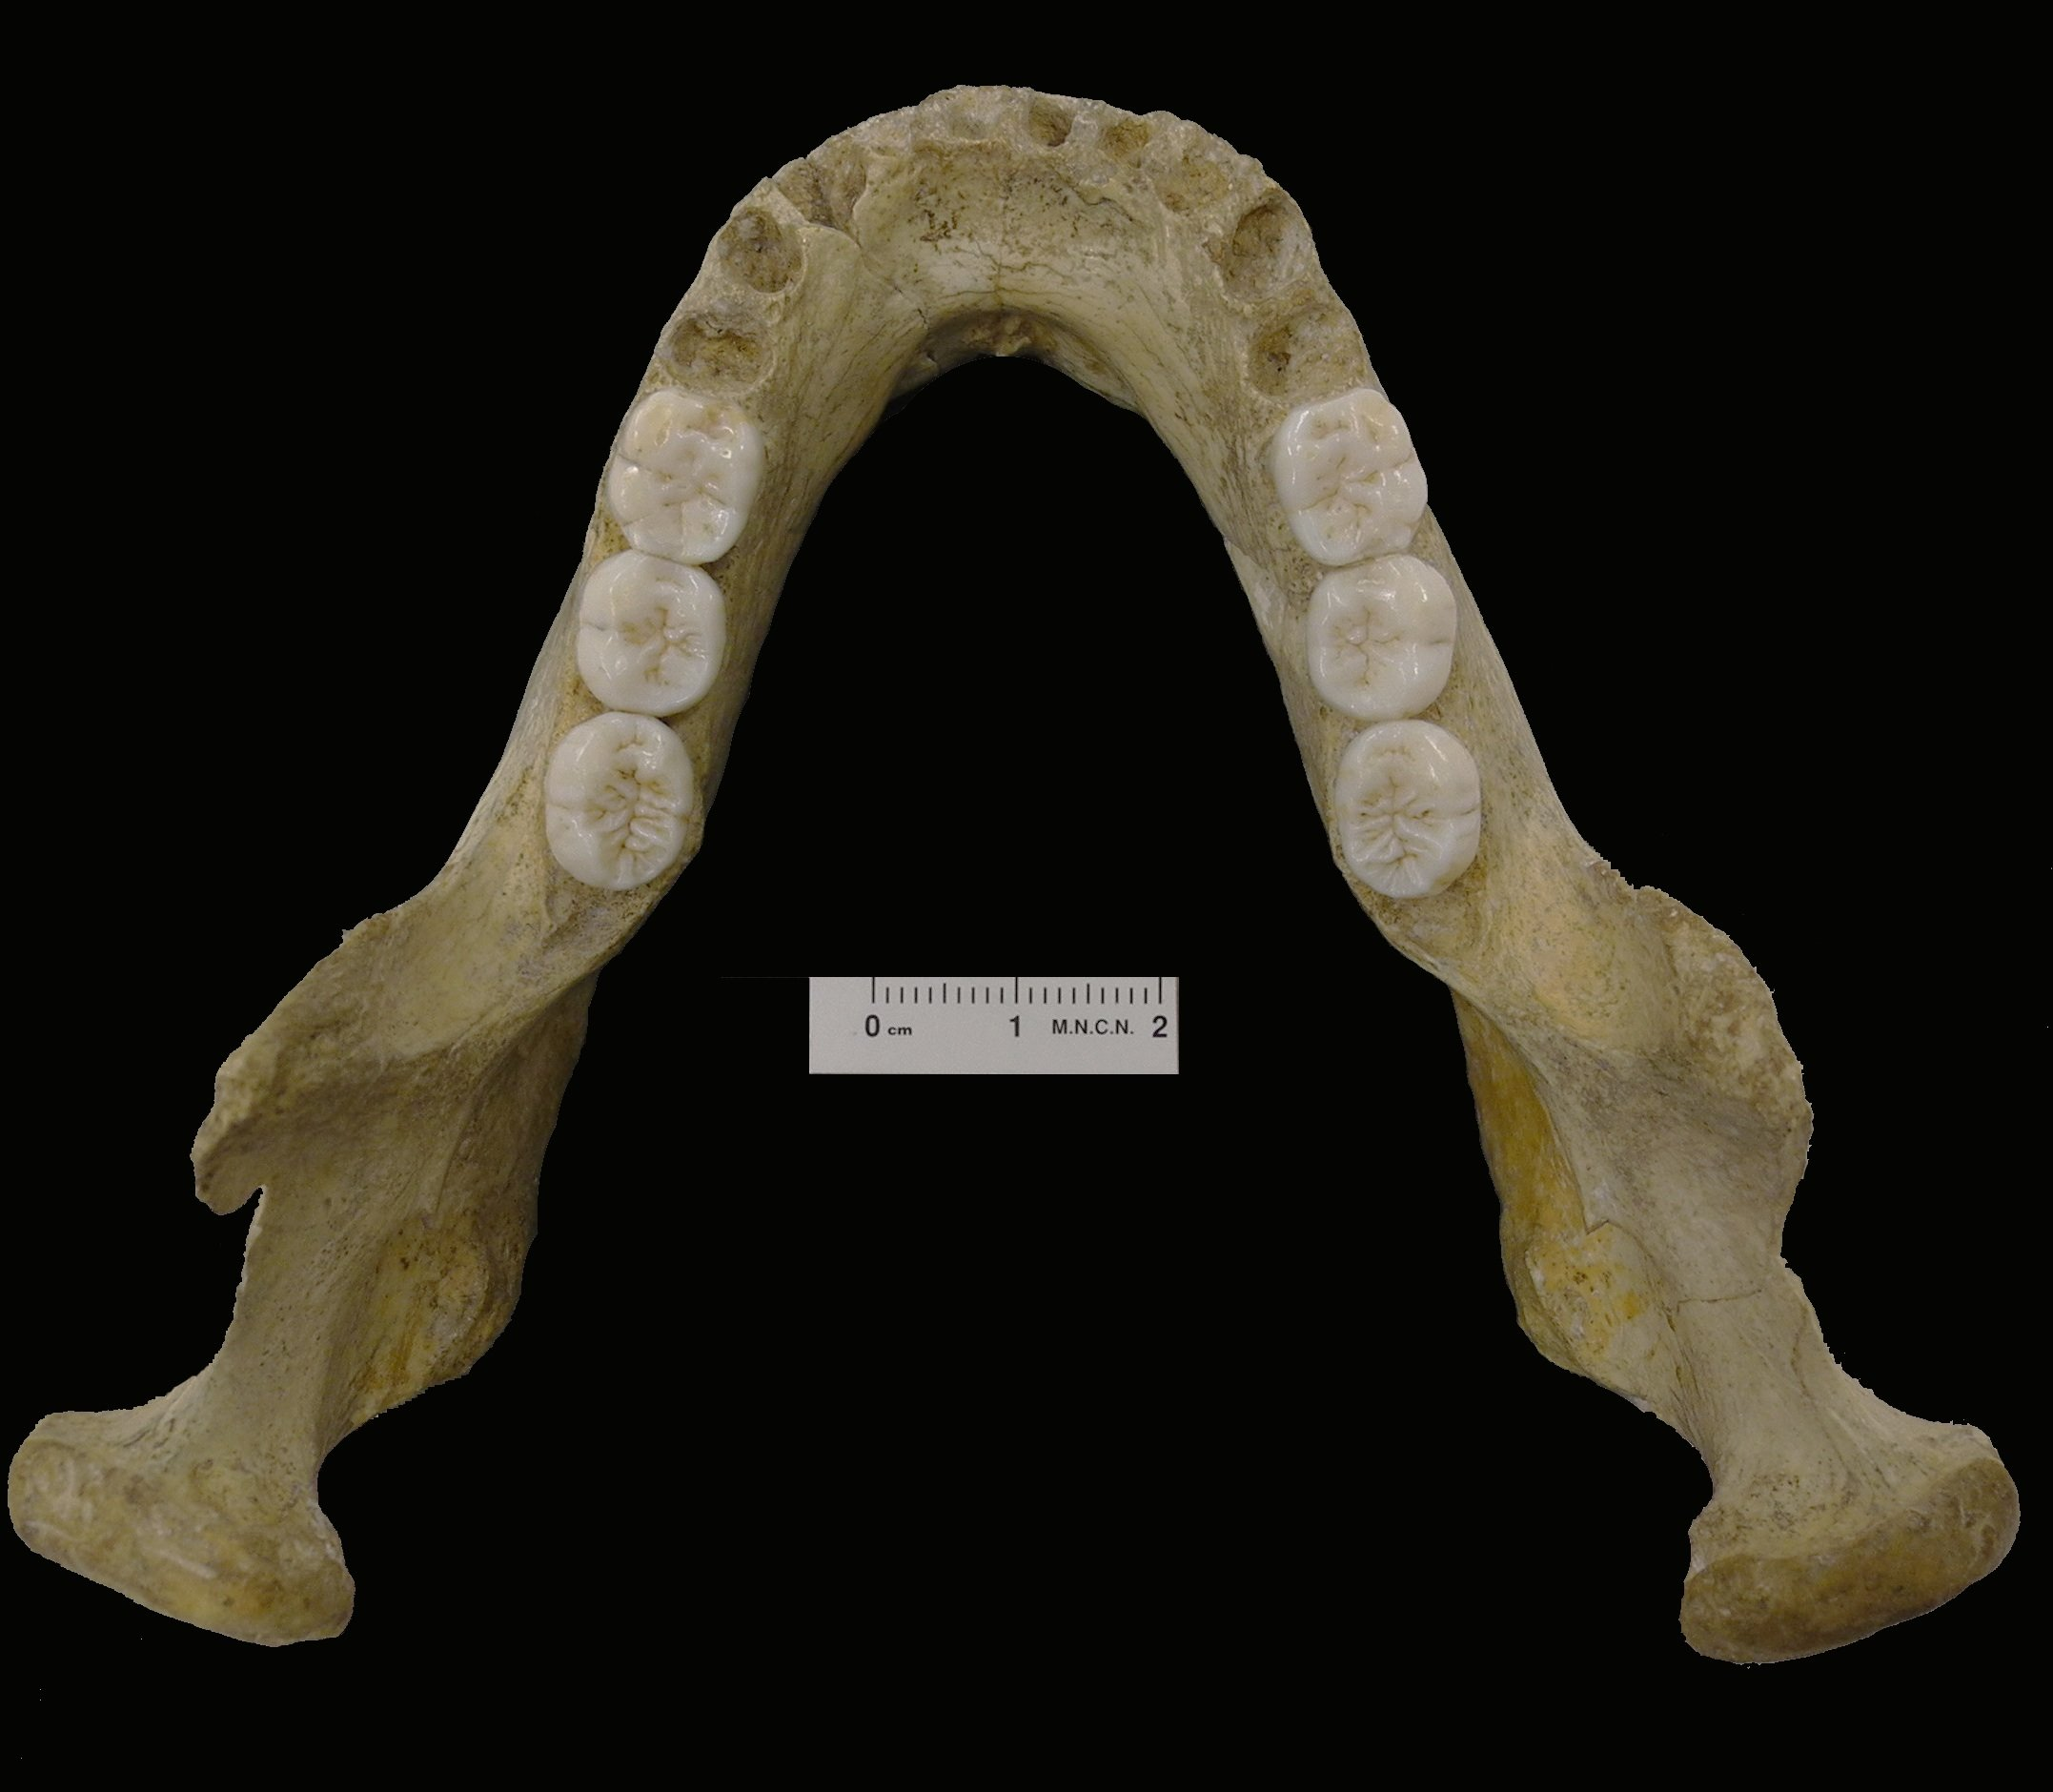 montmaurin la niche mandible reveals the complexity of the